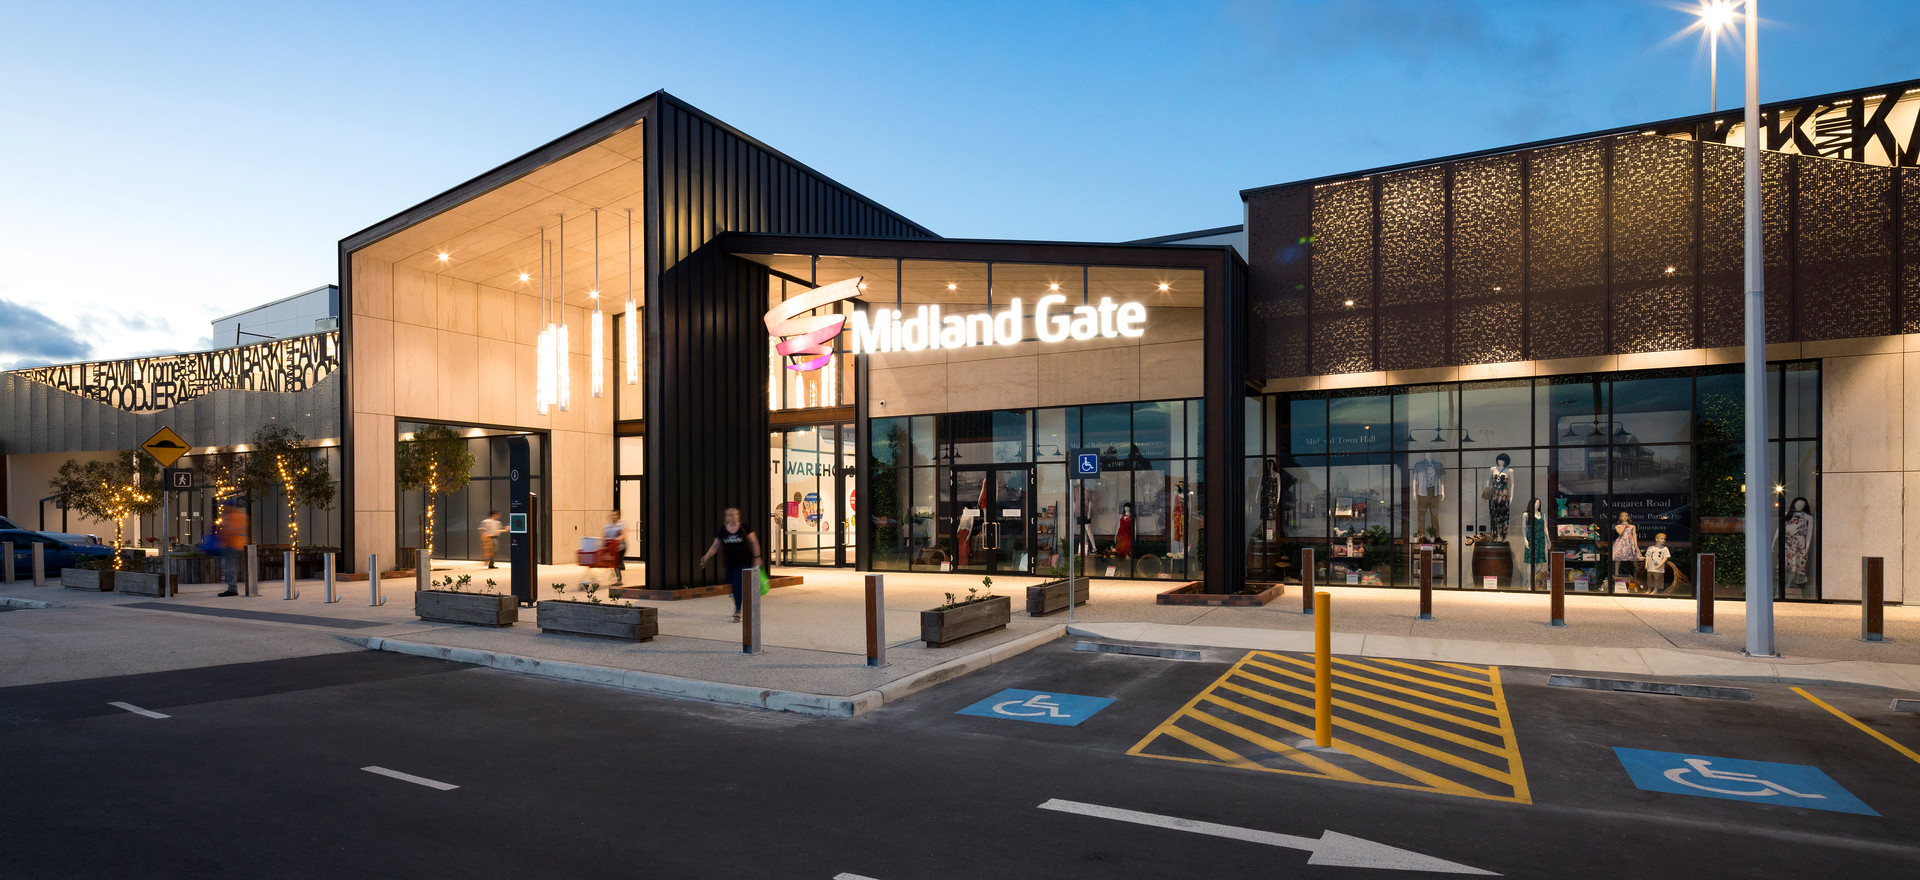 Midland Gate Shopping Centre Expansion